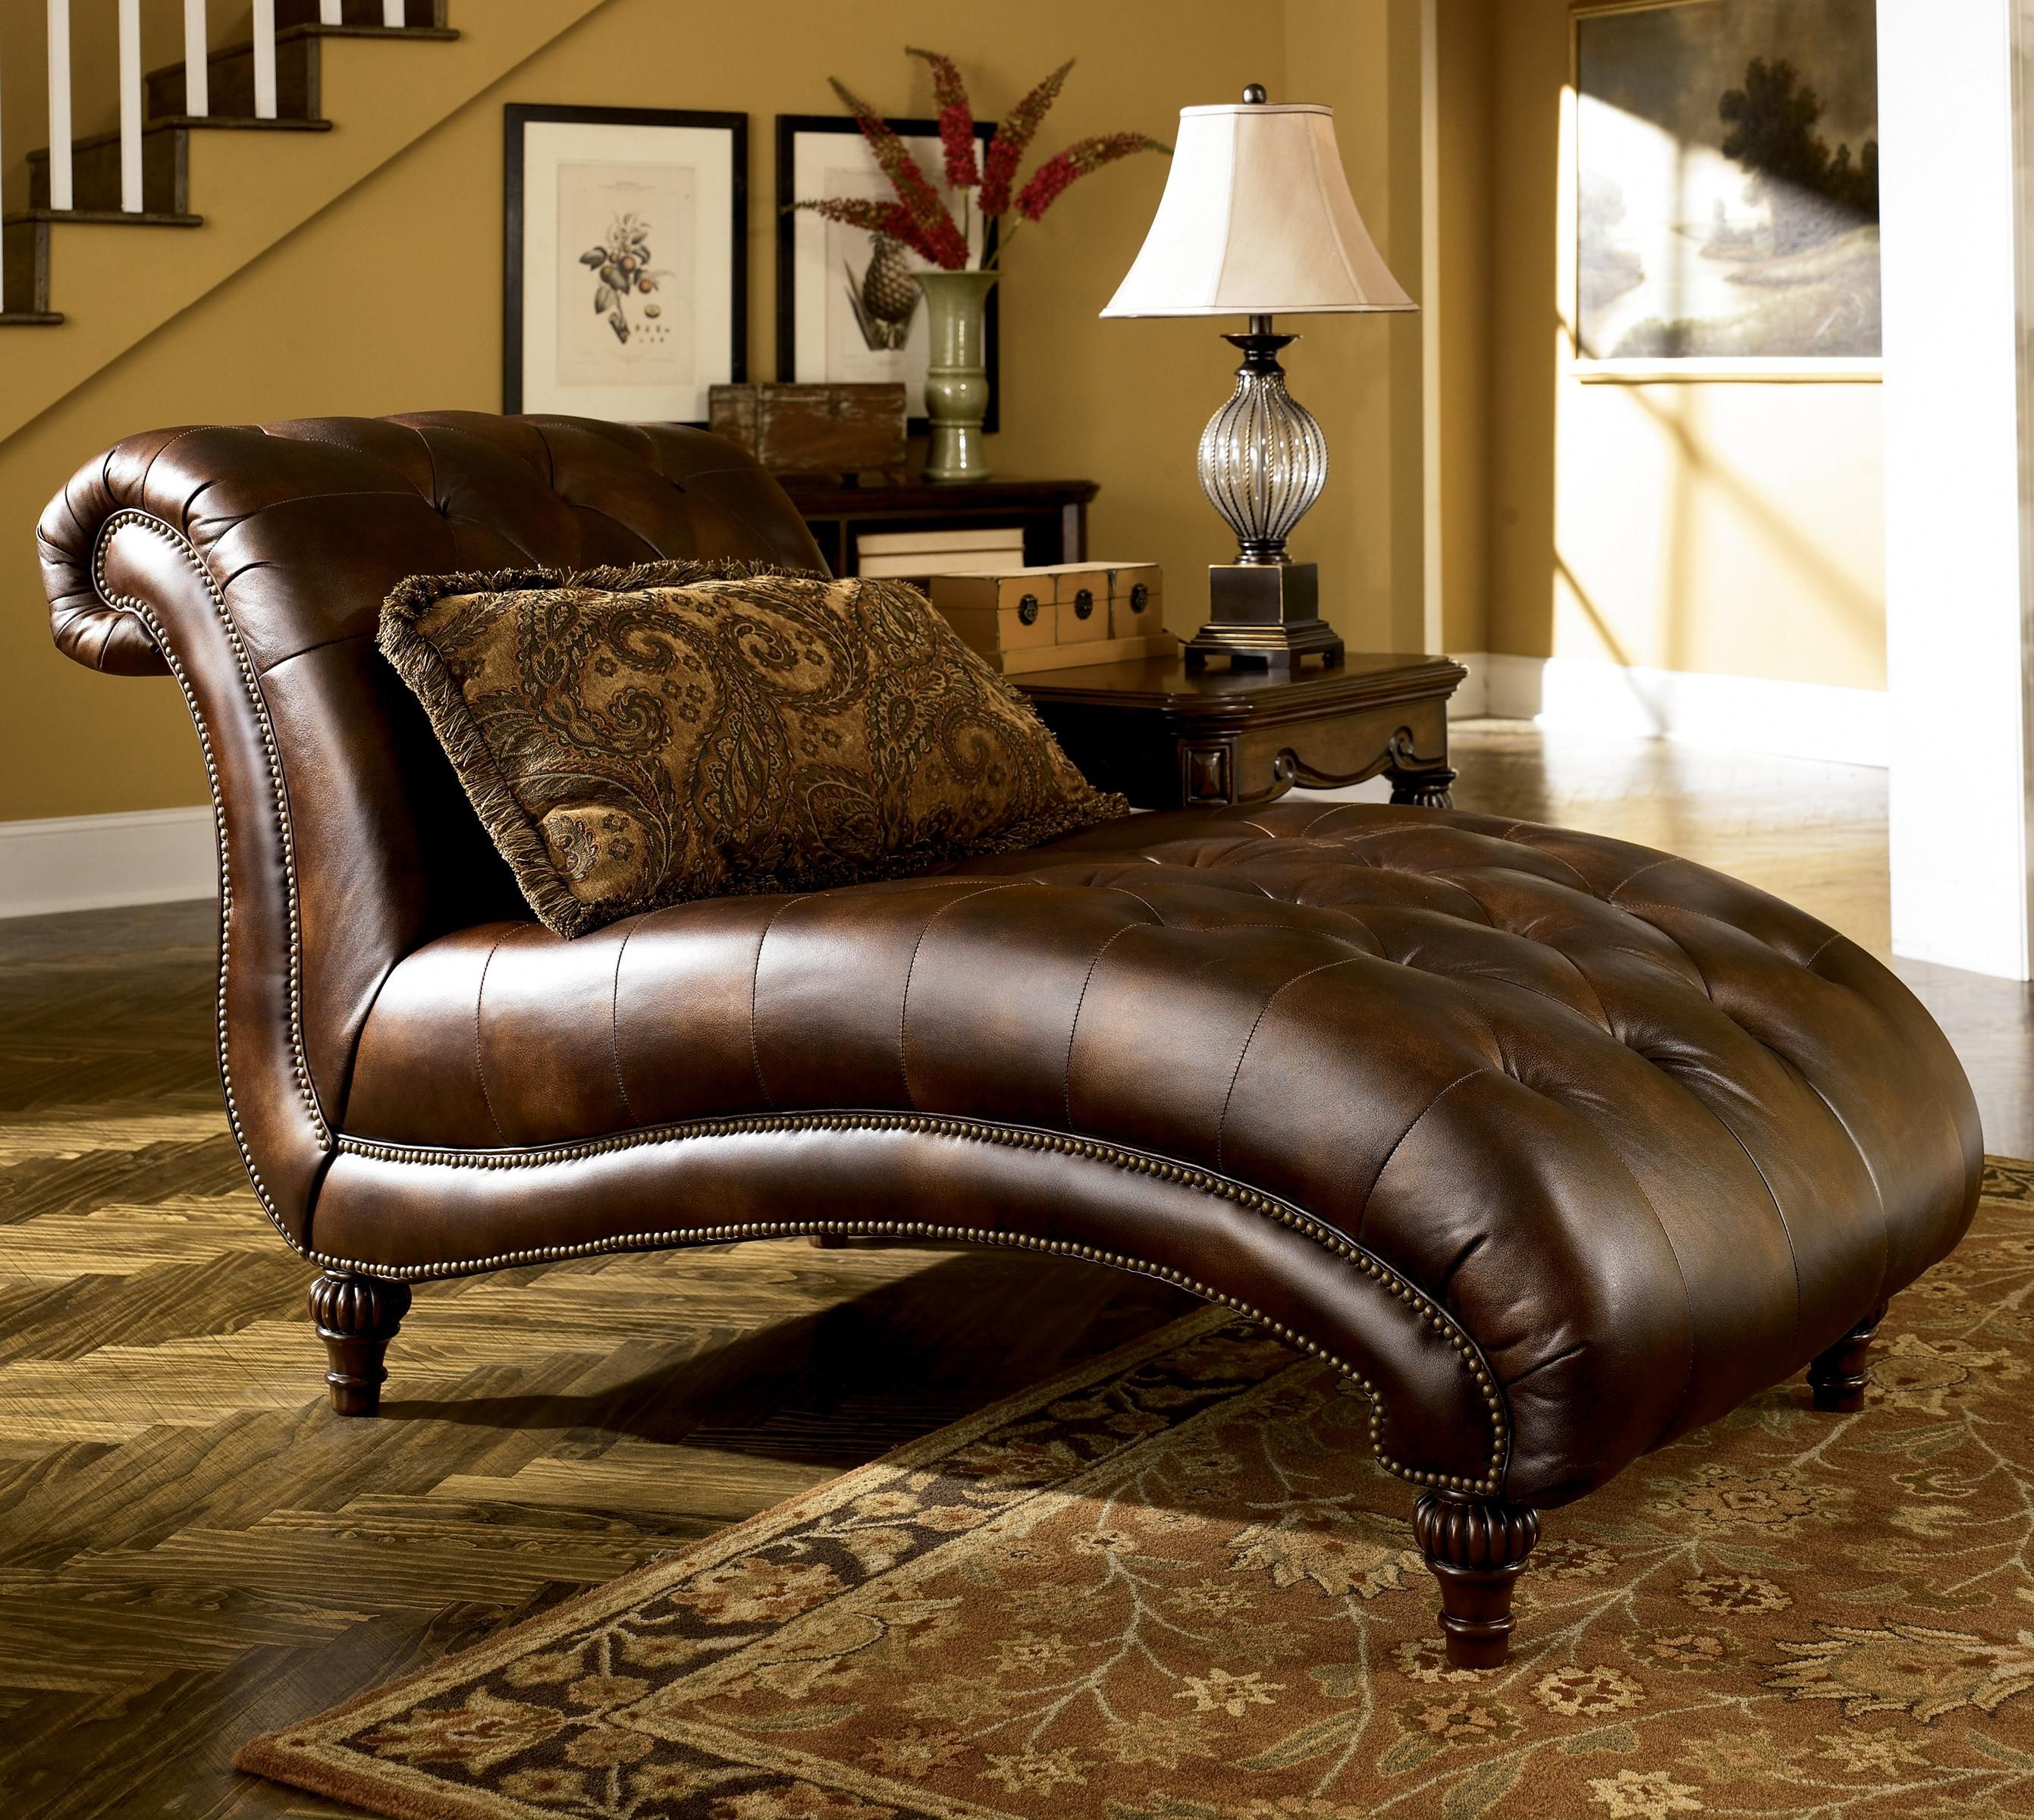 Leather Chaise Lounge Sofa | Sofa Covers | Faux leather sofa, Living ...